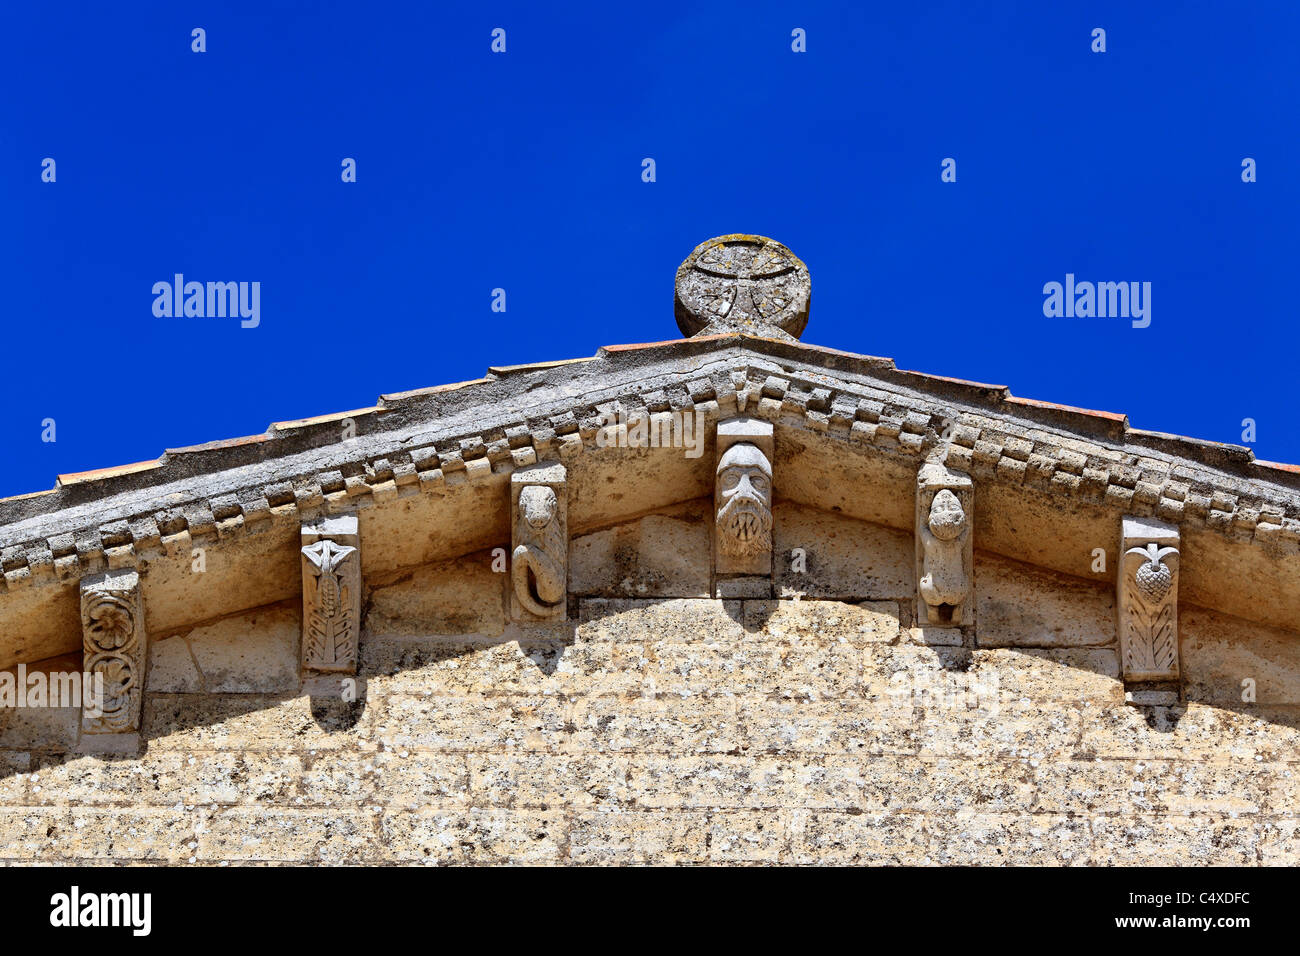 Romanesque church of San Martin de Tours, Fromista, Valladolid, Castile and Leon, Spain - Stock Image